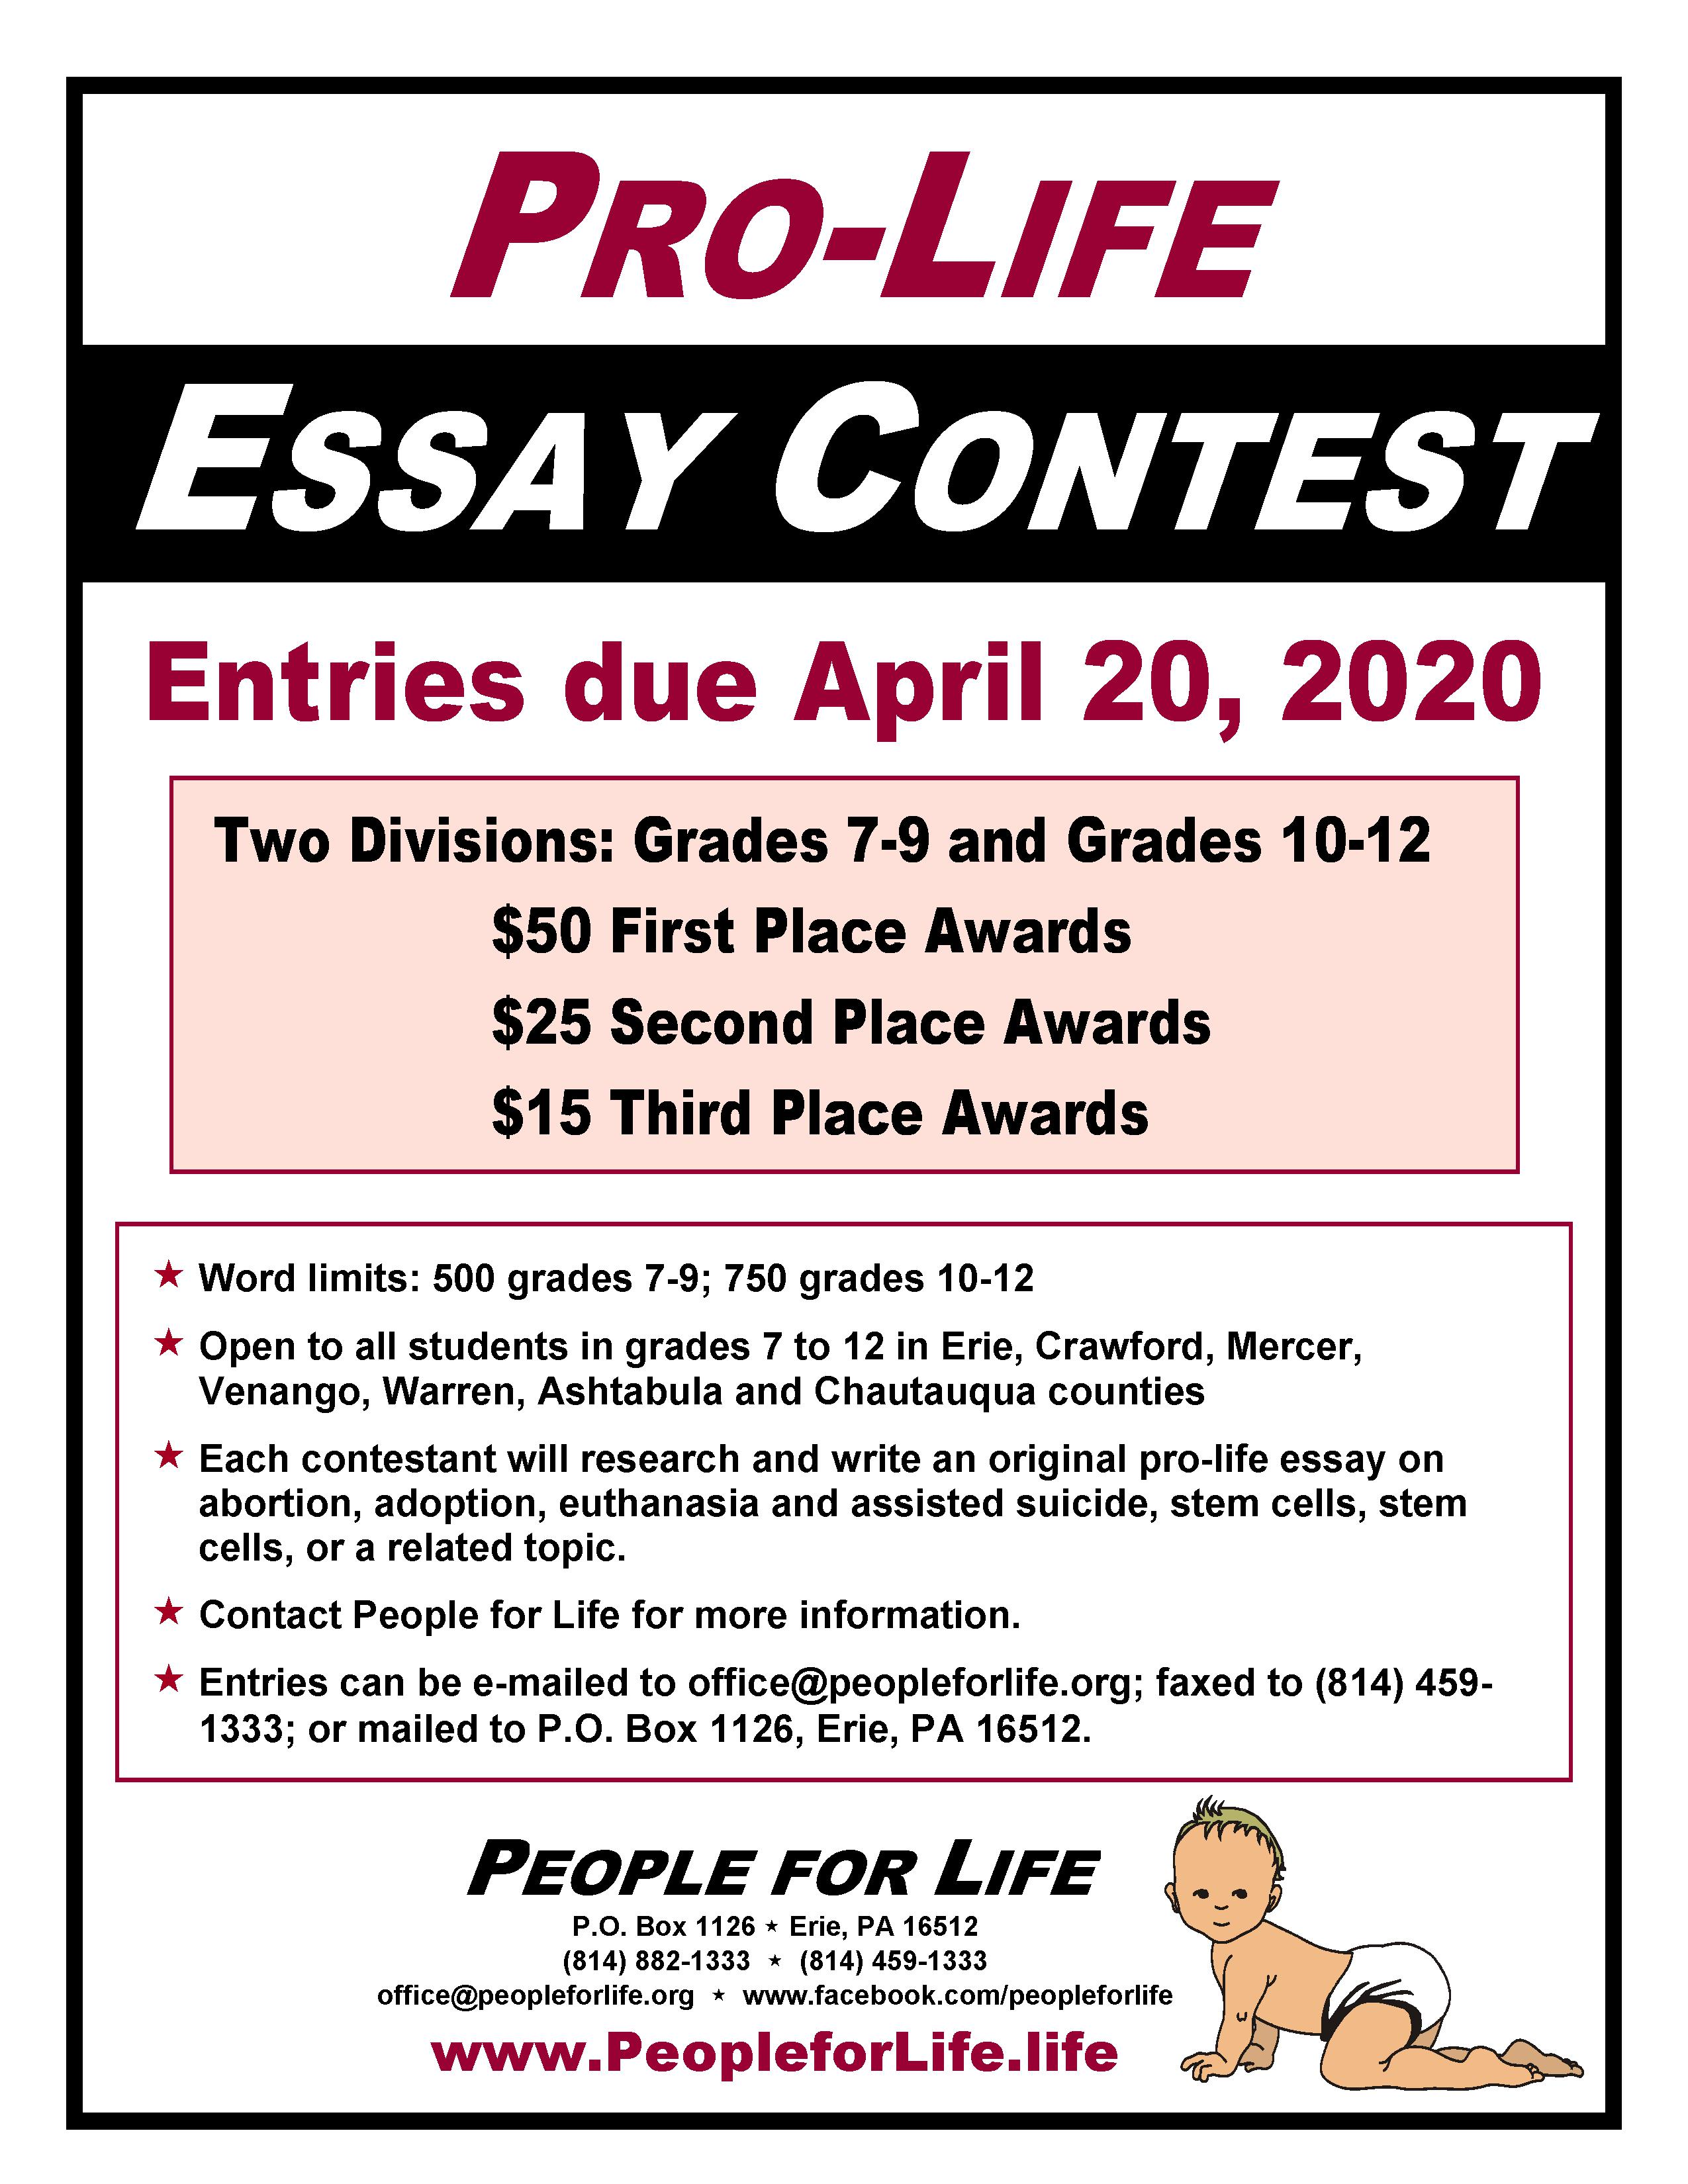 These 11 Essay Contests with Generous Prizes Will Change Your Life